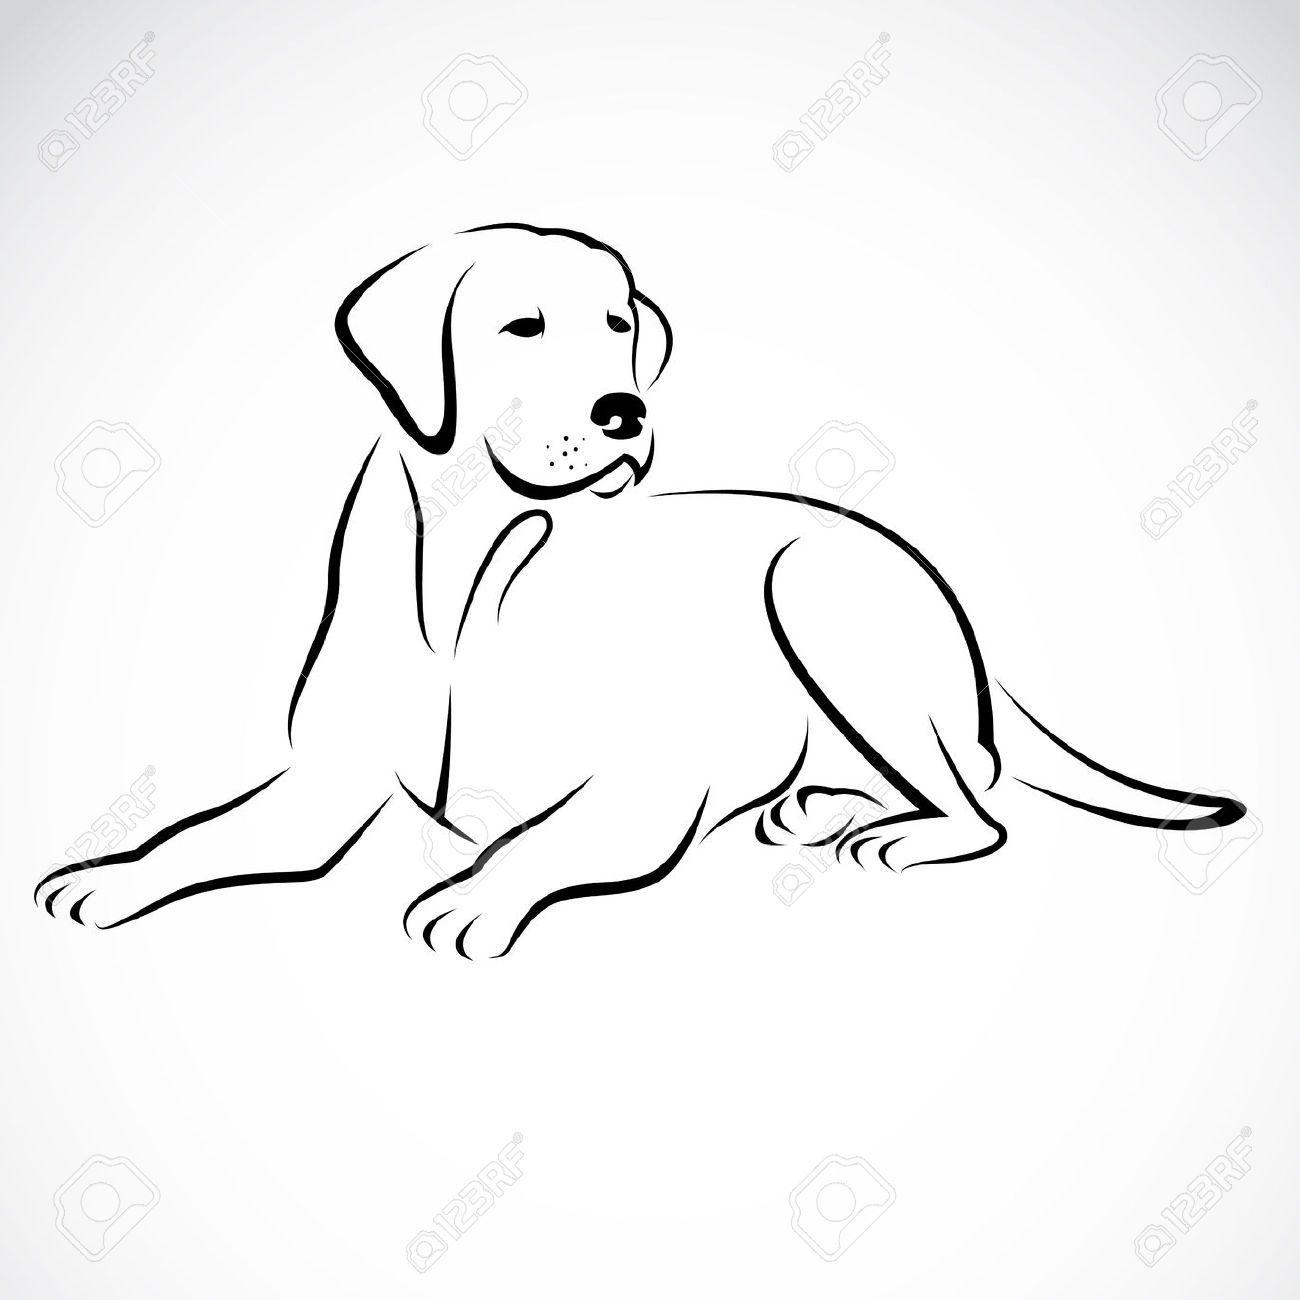 Stock Vector In 2020 Dog Tattoos Dog Silhouette Animal Drawings